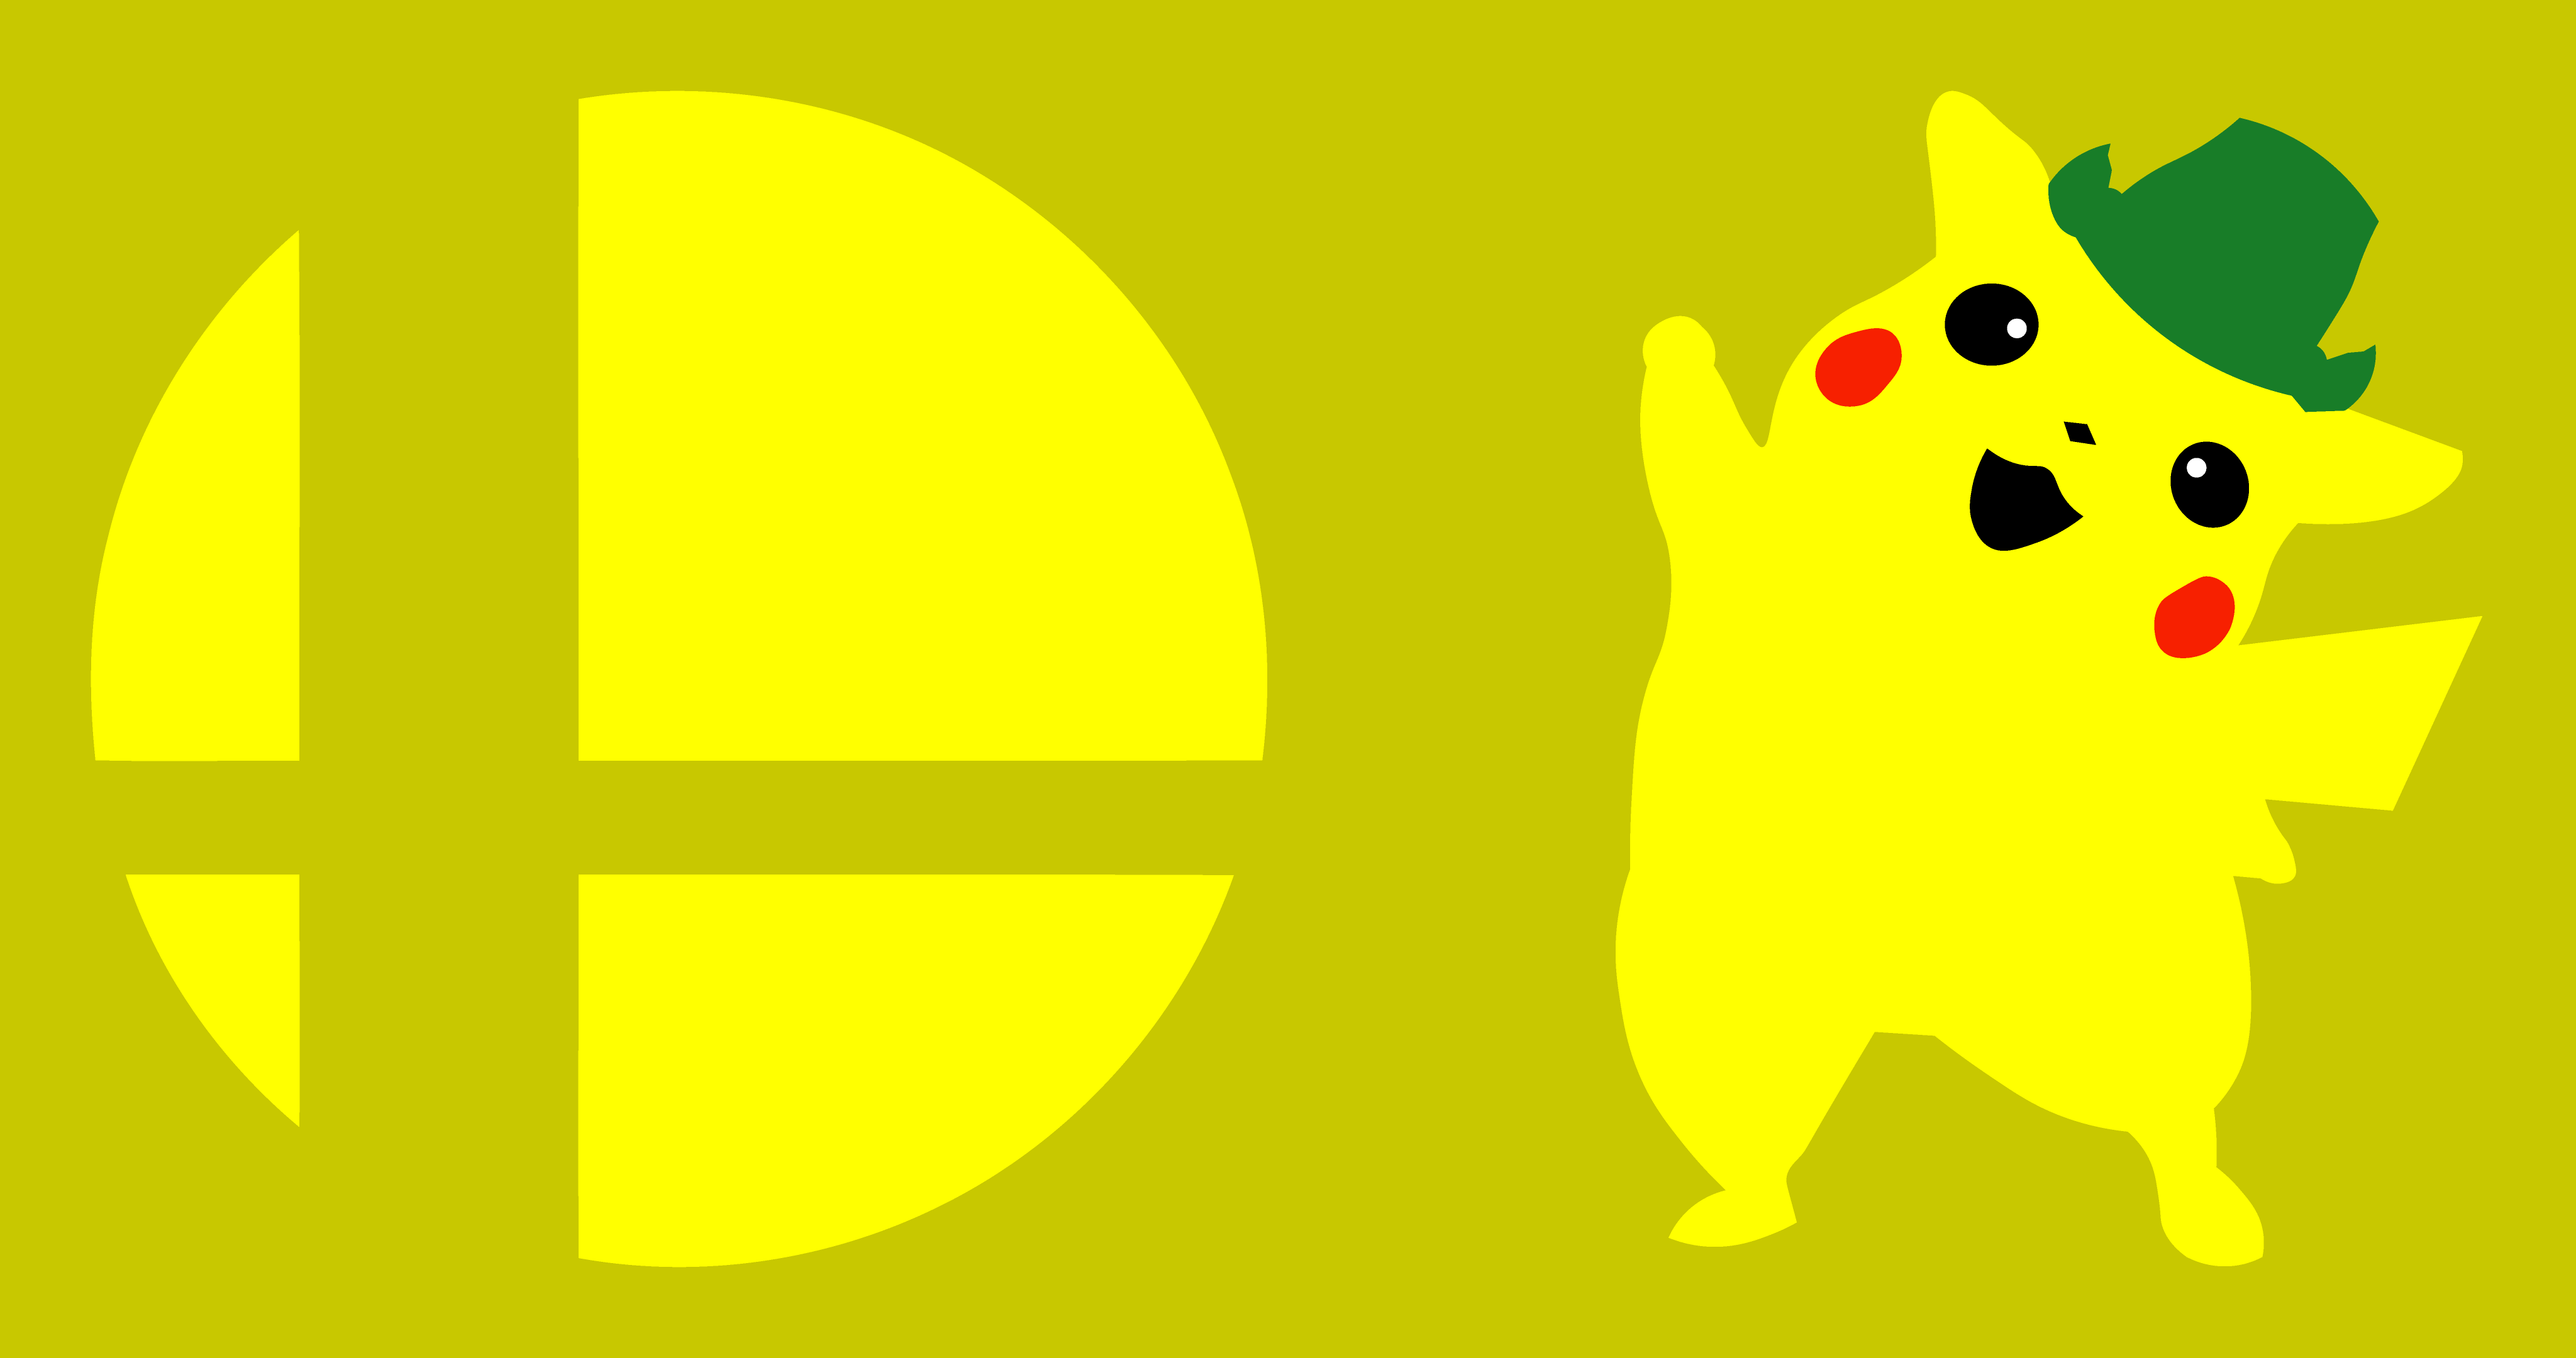 smash-4k-wallpaper-pimpachu